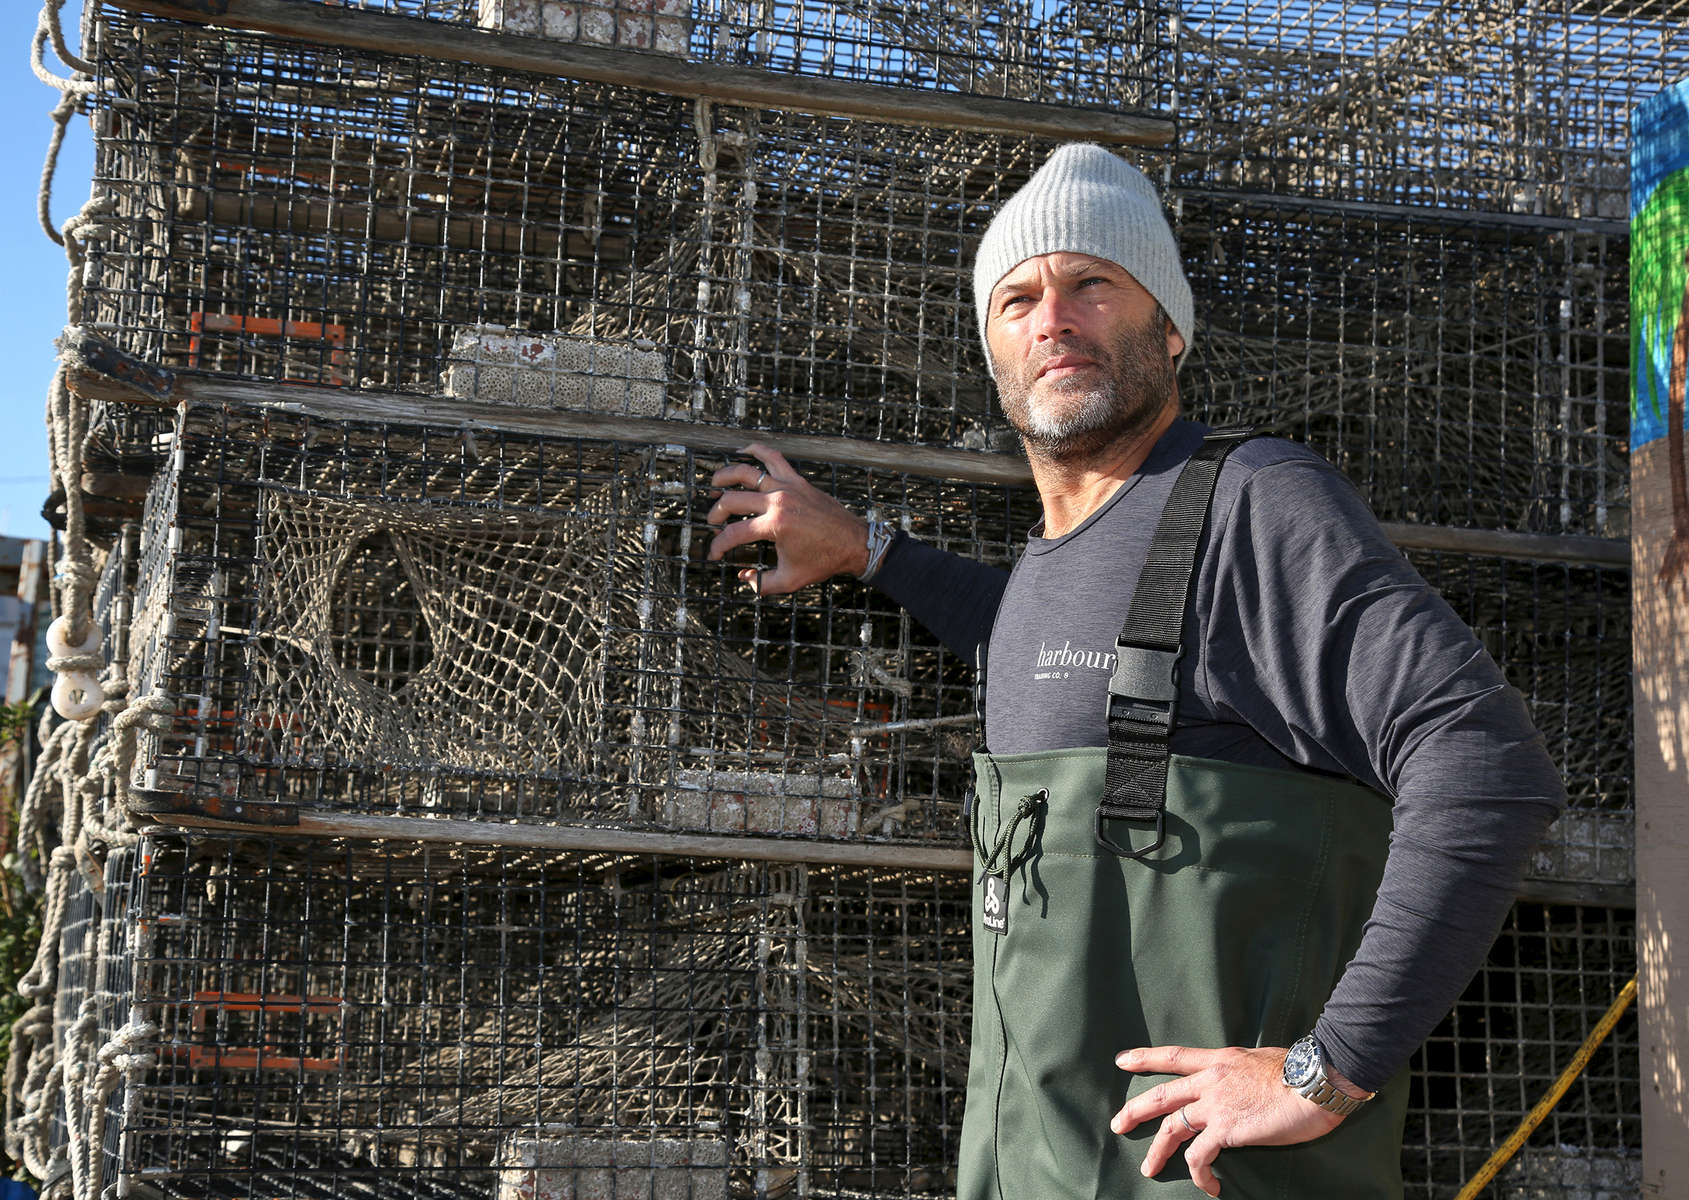 Business Feature On David Goldsmith of Harbour Trading Company